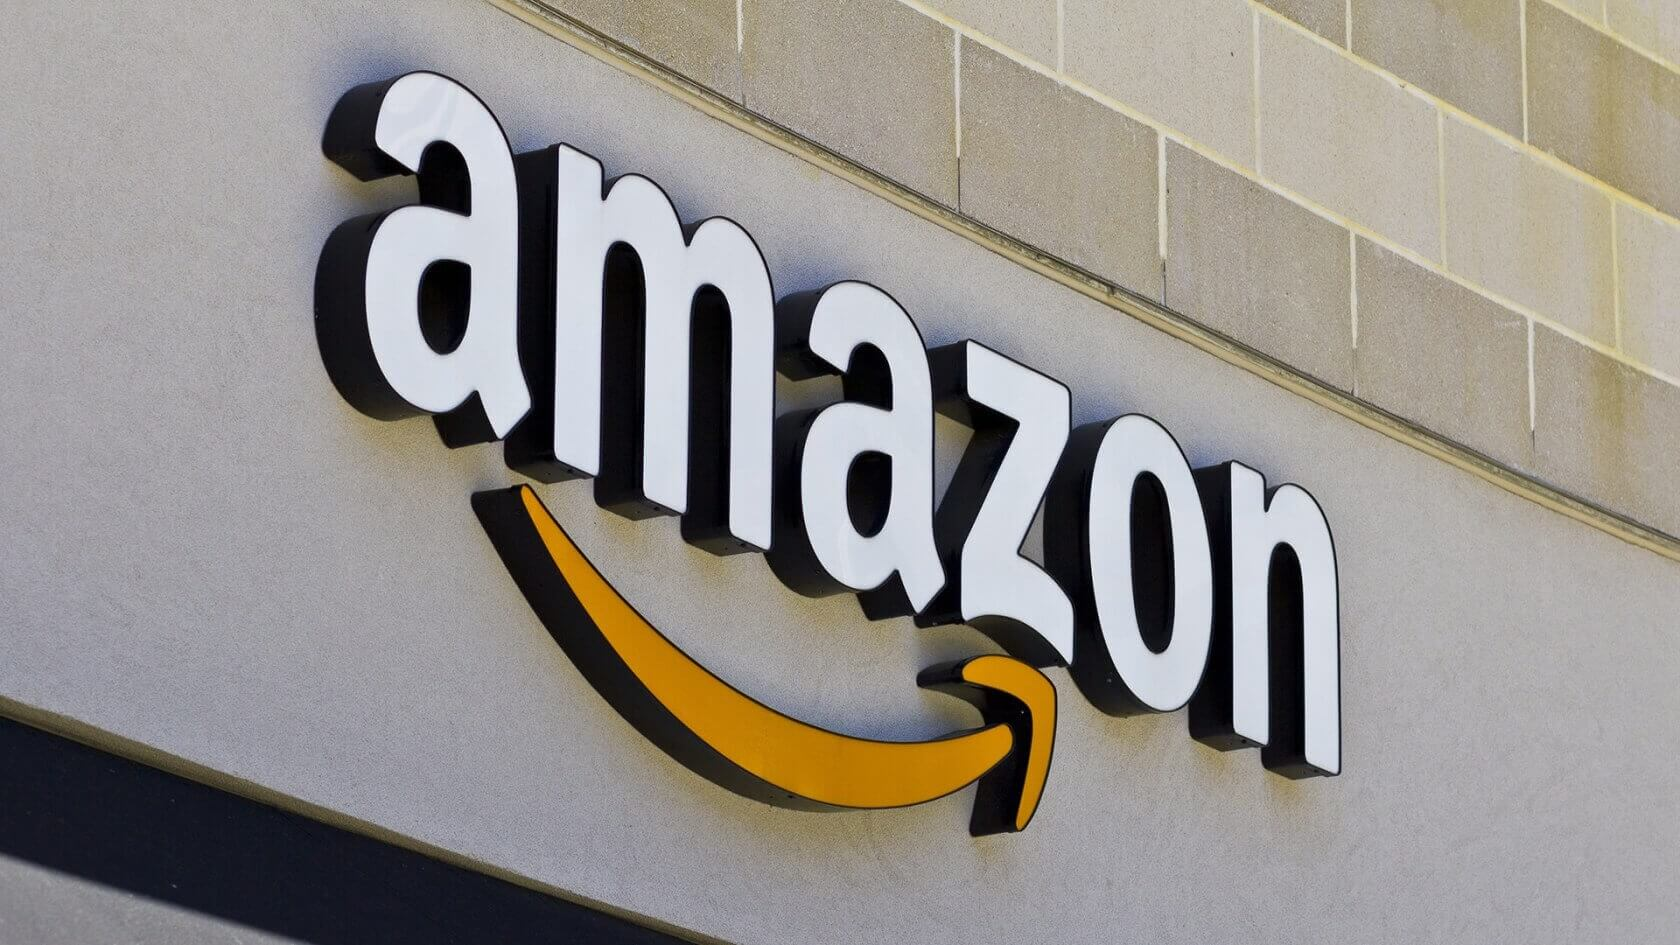 Amazon promises up to two weeks of paid sick leave for workers diagnosed with COVID-19